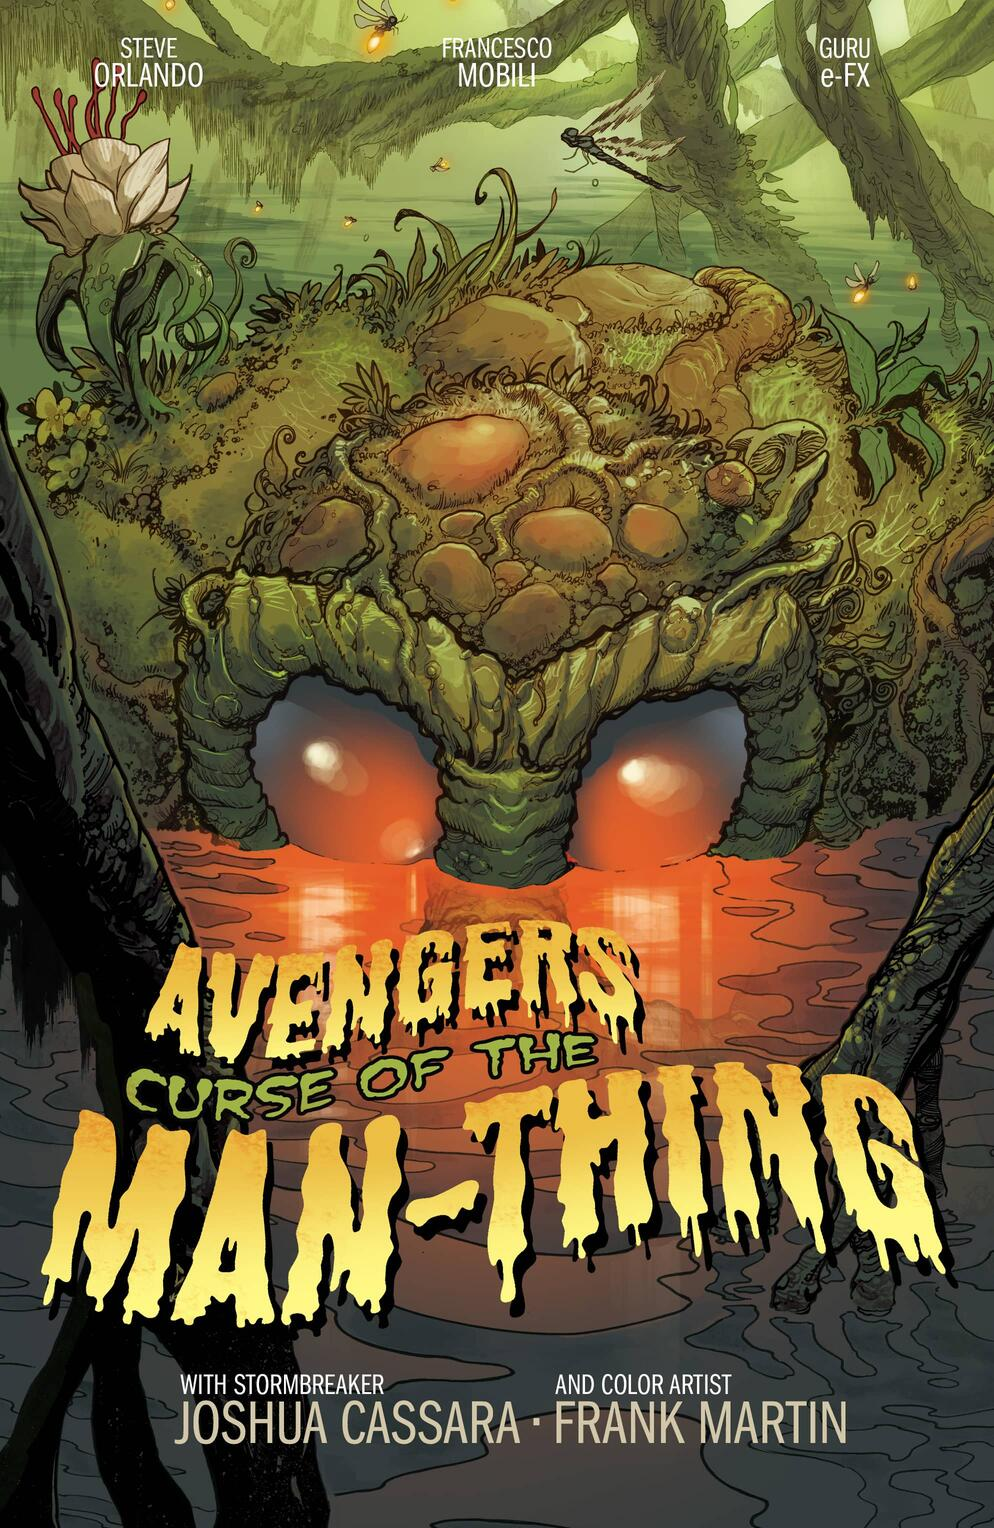 Avengers: Curse of the Man Thing variant cover